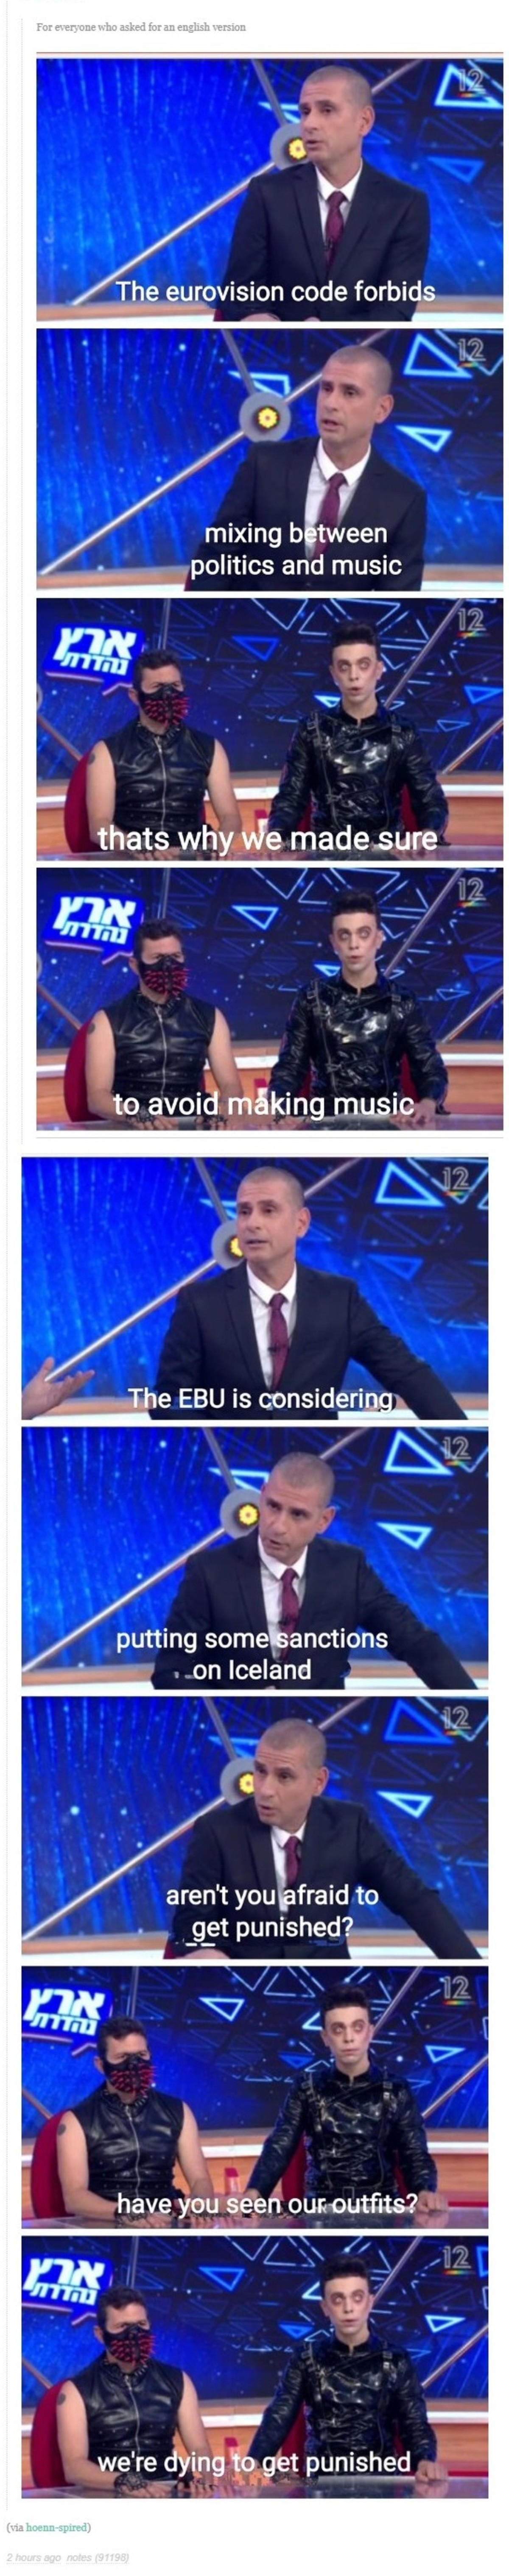 """Eurovision Code. .. I dont get how people can watch trash like eurovision, there is NOTHING compelling about it in any way other than """"hey, everyone else is watching it so i h"""